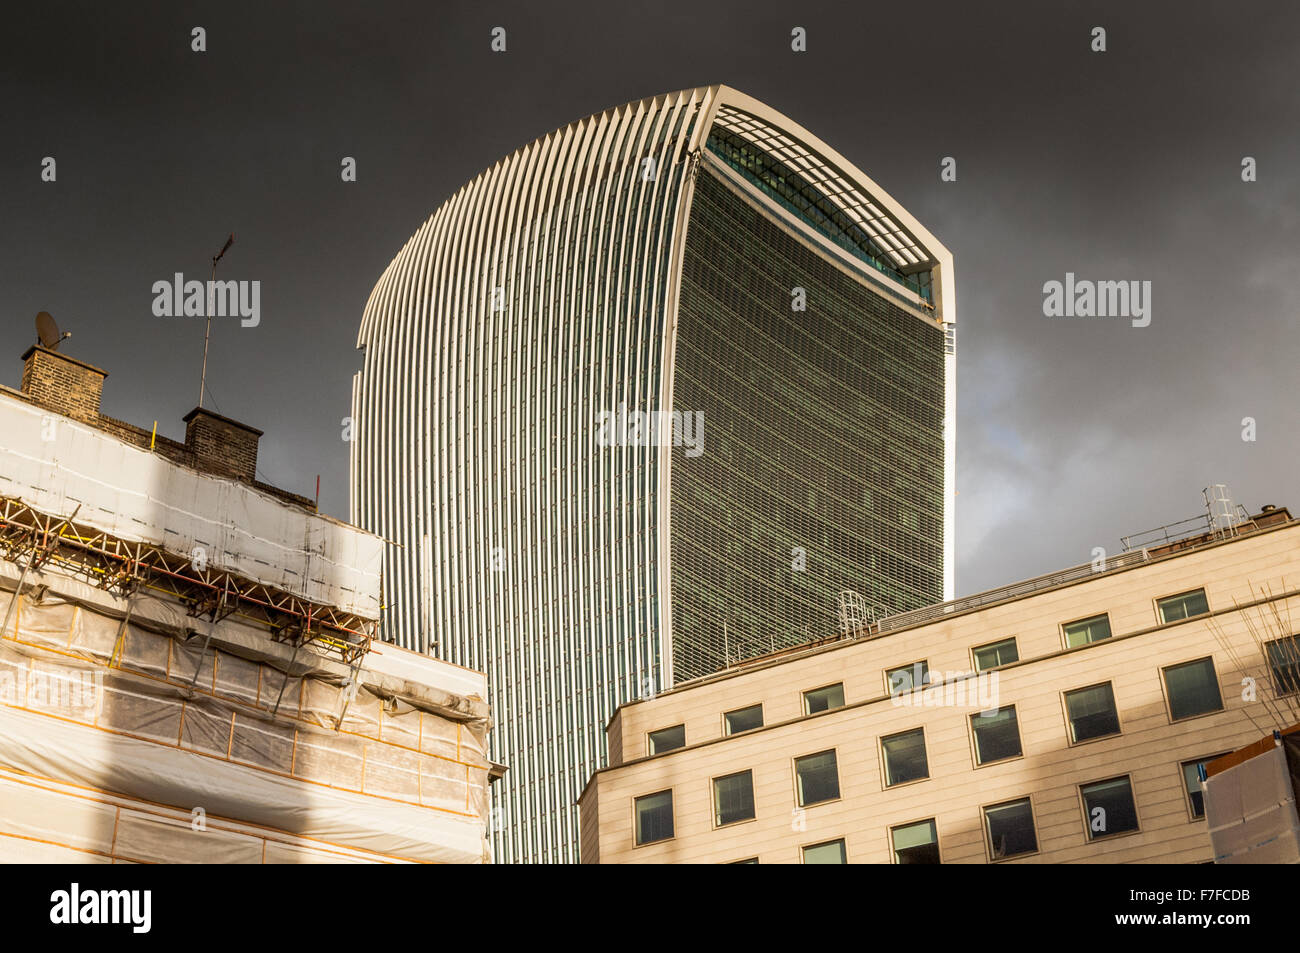 View from The Monument London looking towards the skyscraper 20 Fenchurch St. - Stock Image